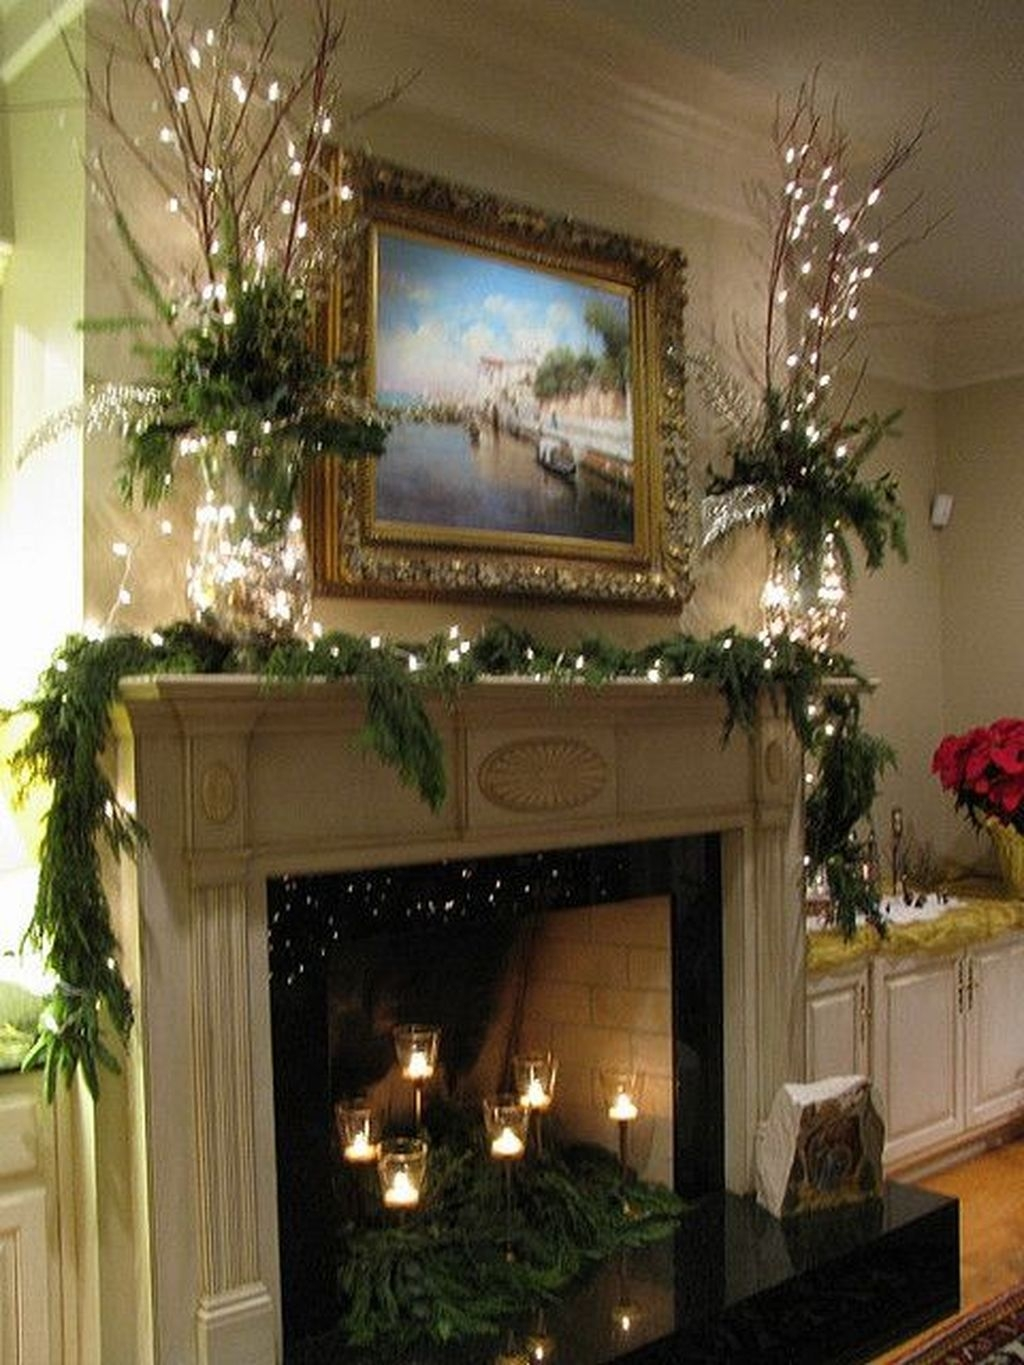 The Best Christmas Fireplace Decoration For Any Home Model 15